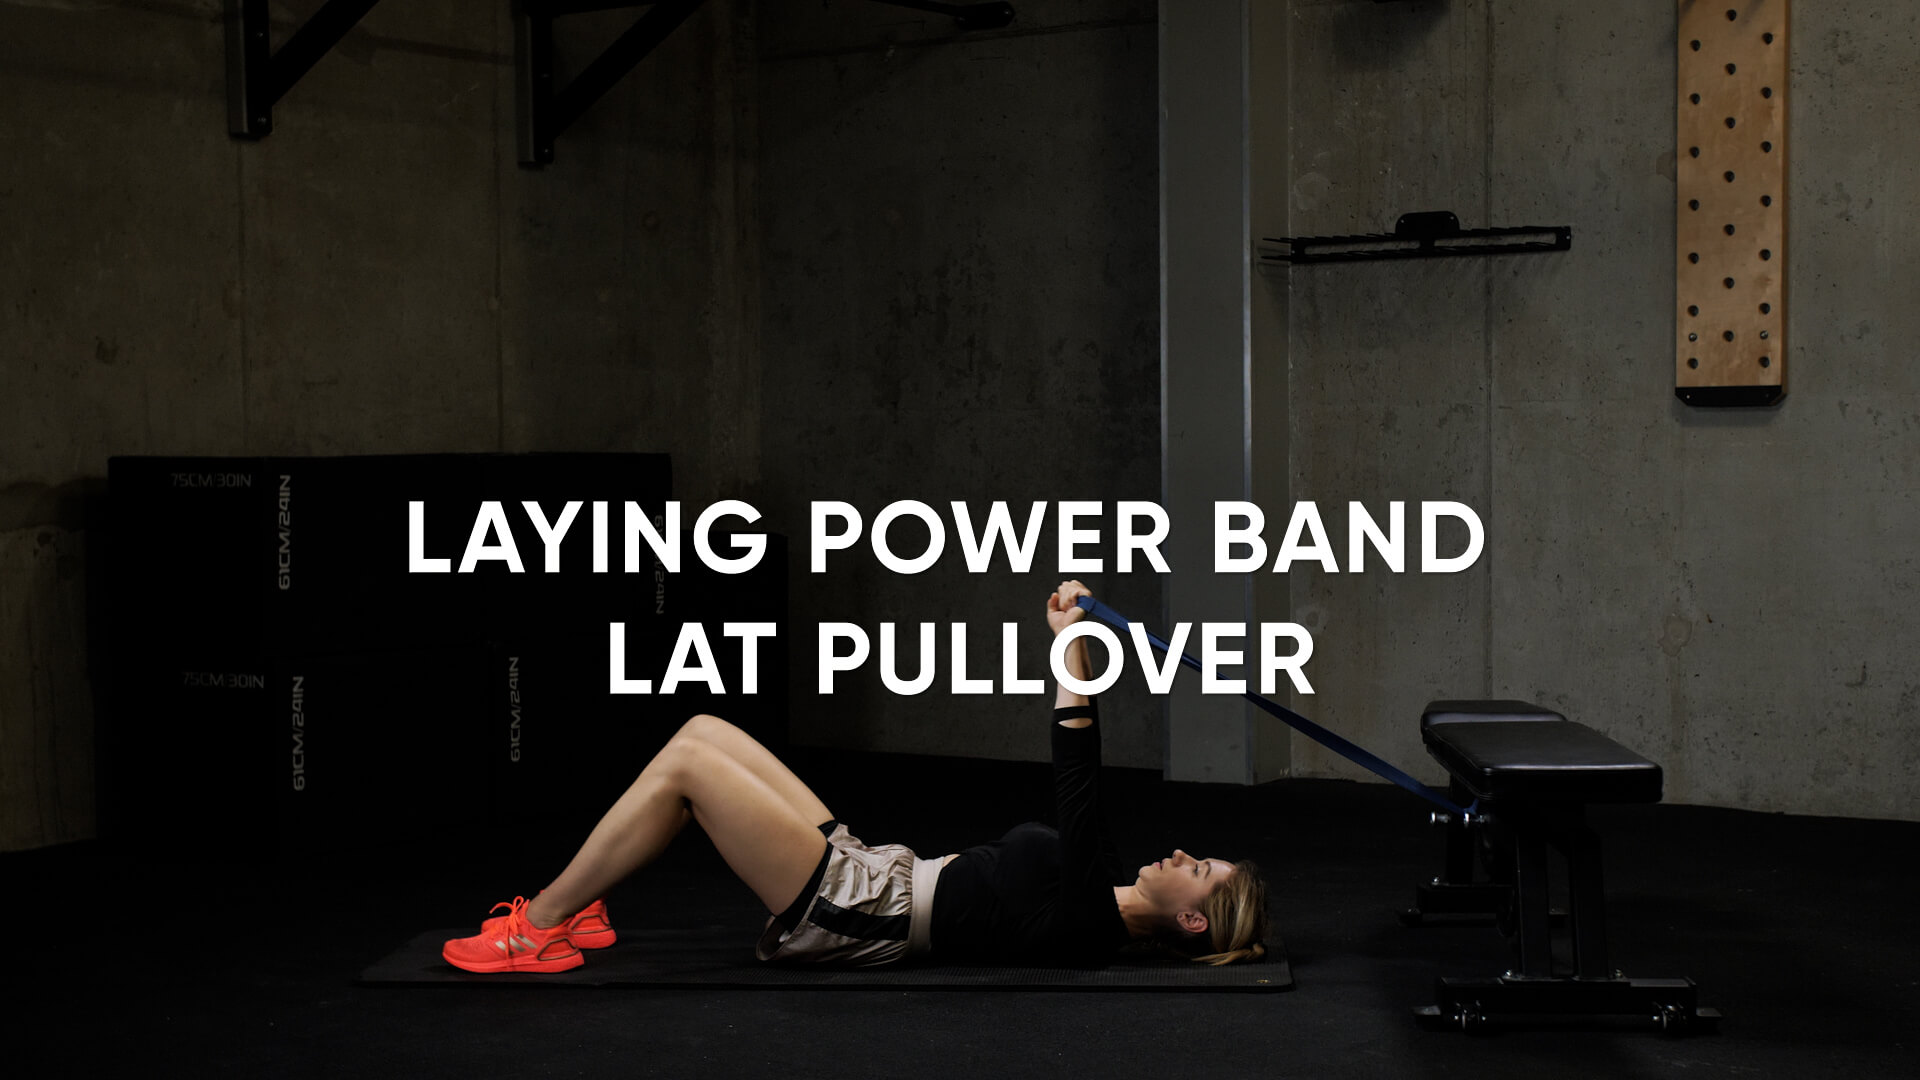 Laying Power Band Lat Pullover